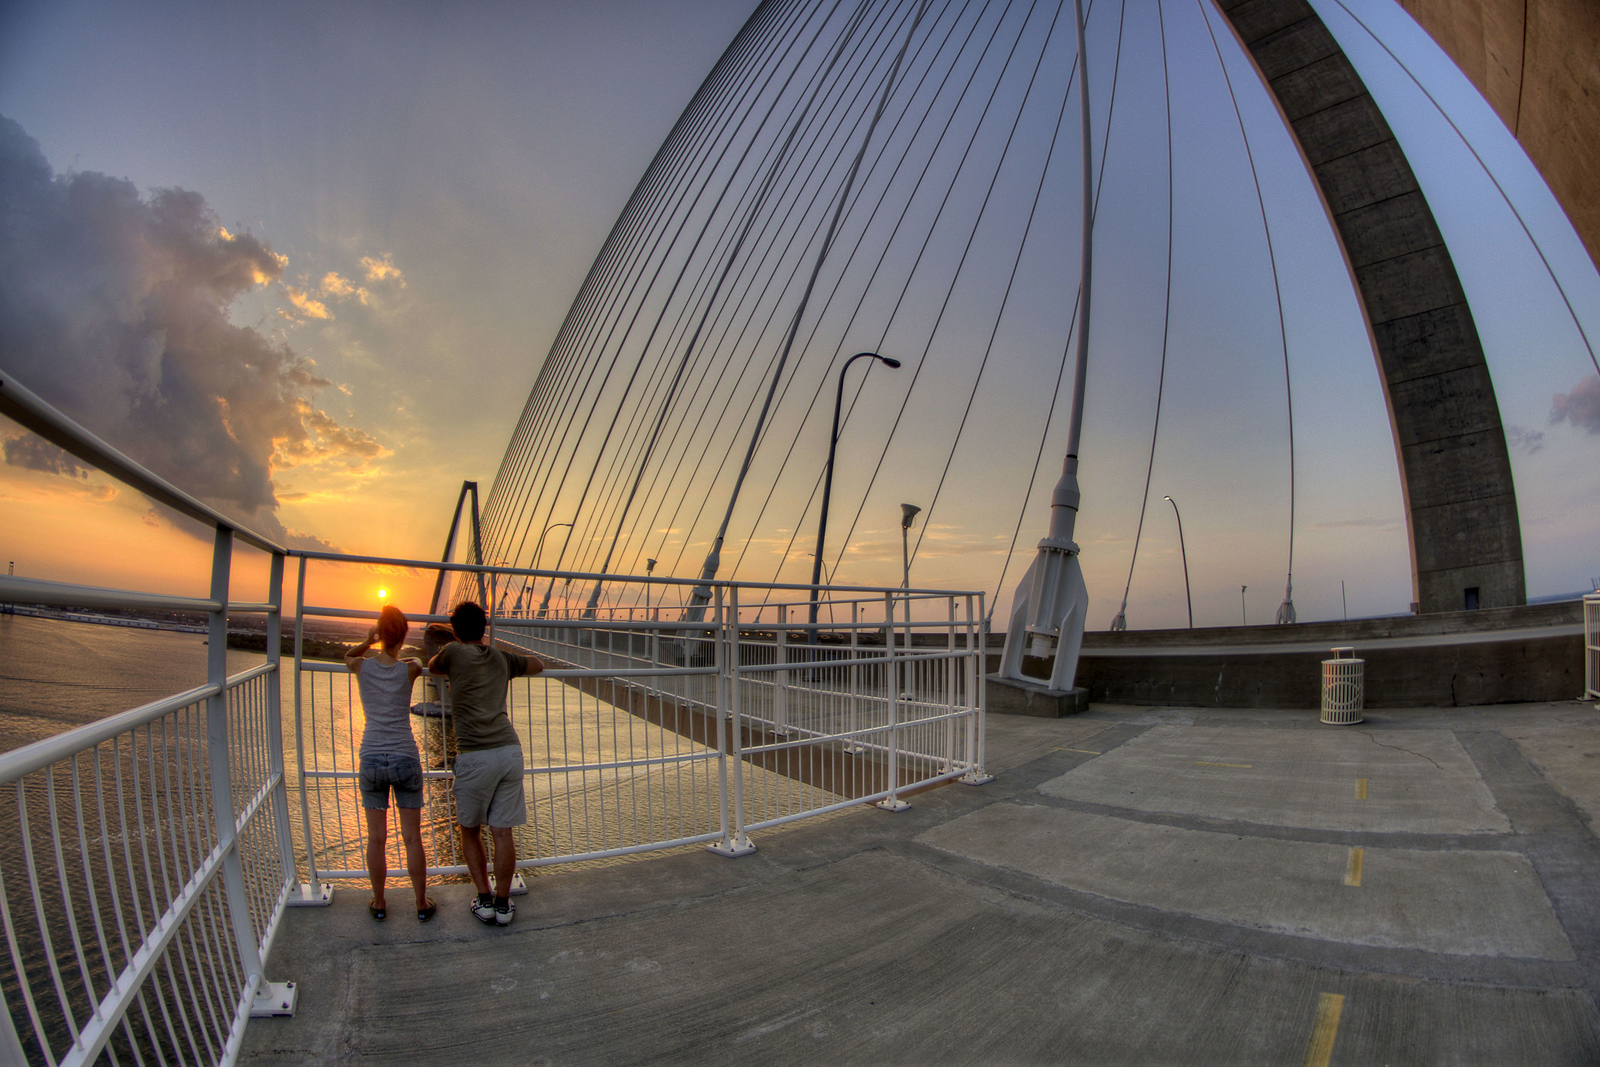 A couple watches a warm sunset from Wonders' Way on the Arthur Ravenel, Jr. Bridge in Charleston, SC on Sunday, September 8, 2013. Copyright 2013 Jason Barnette